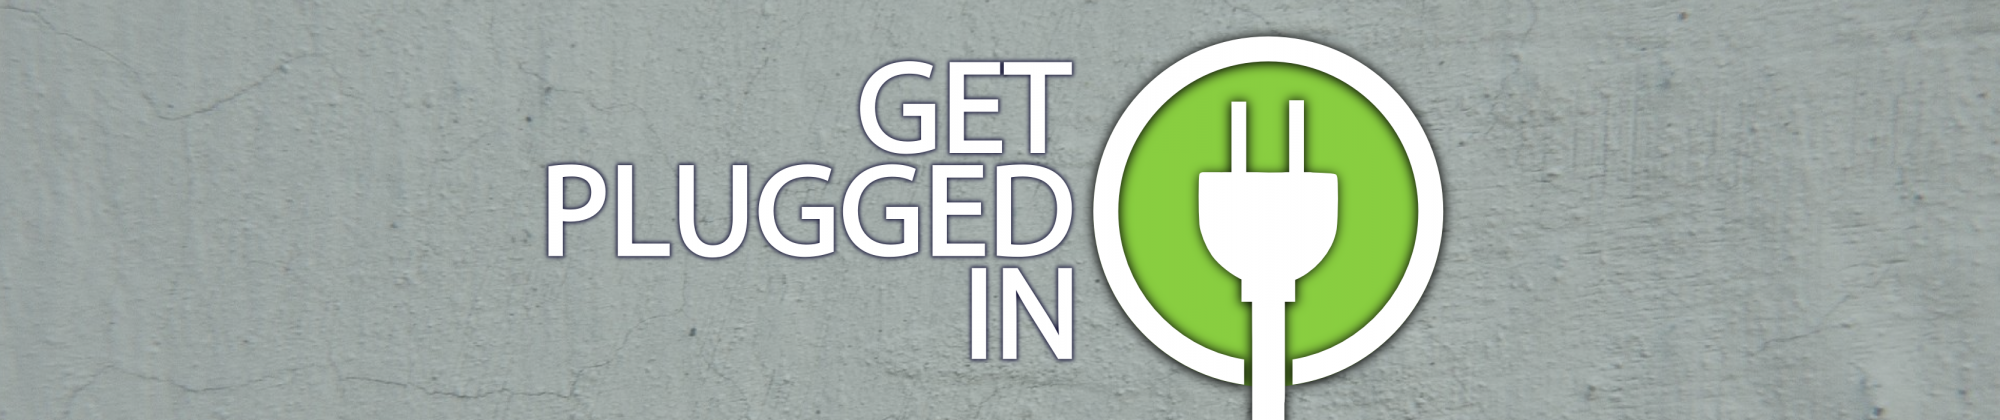 getplugged-in-22-banner-wide